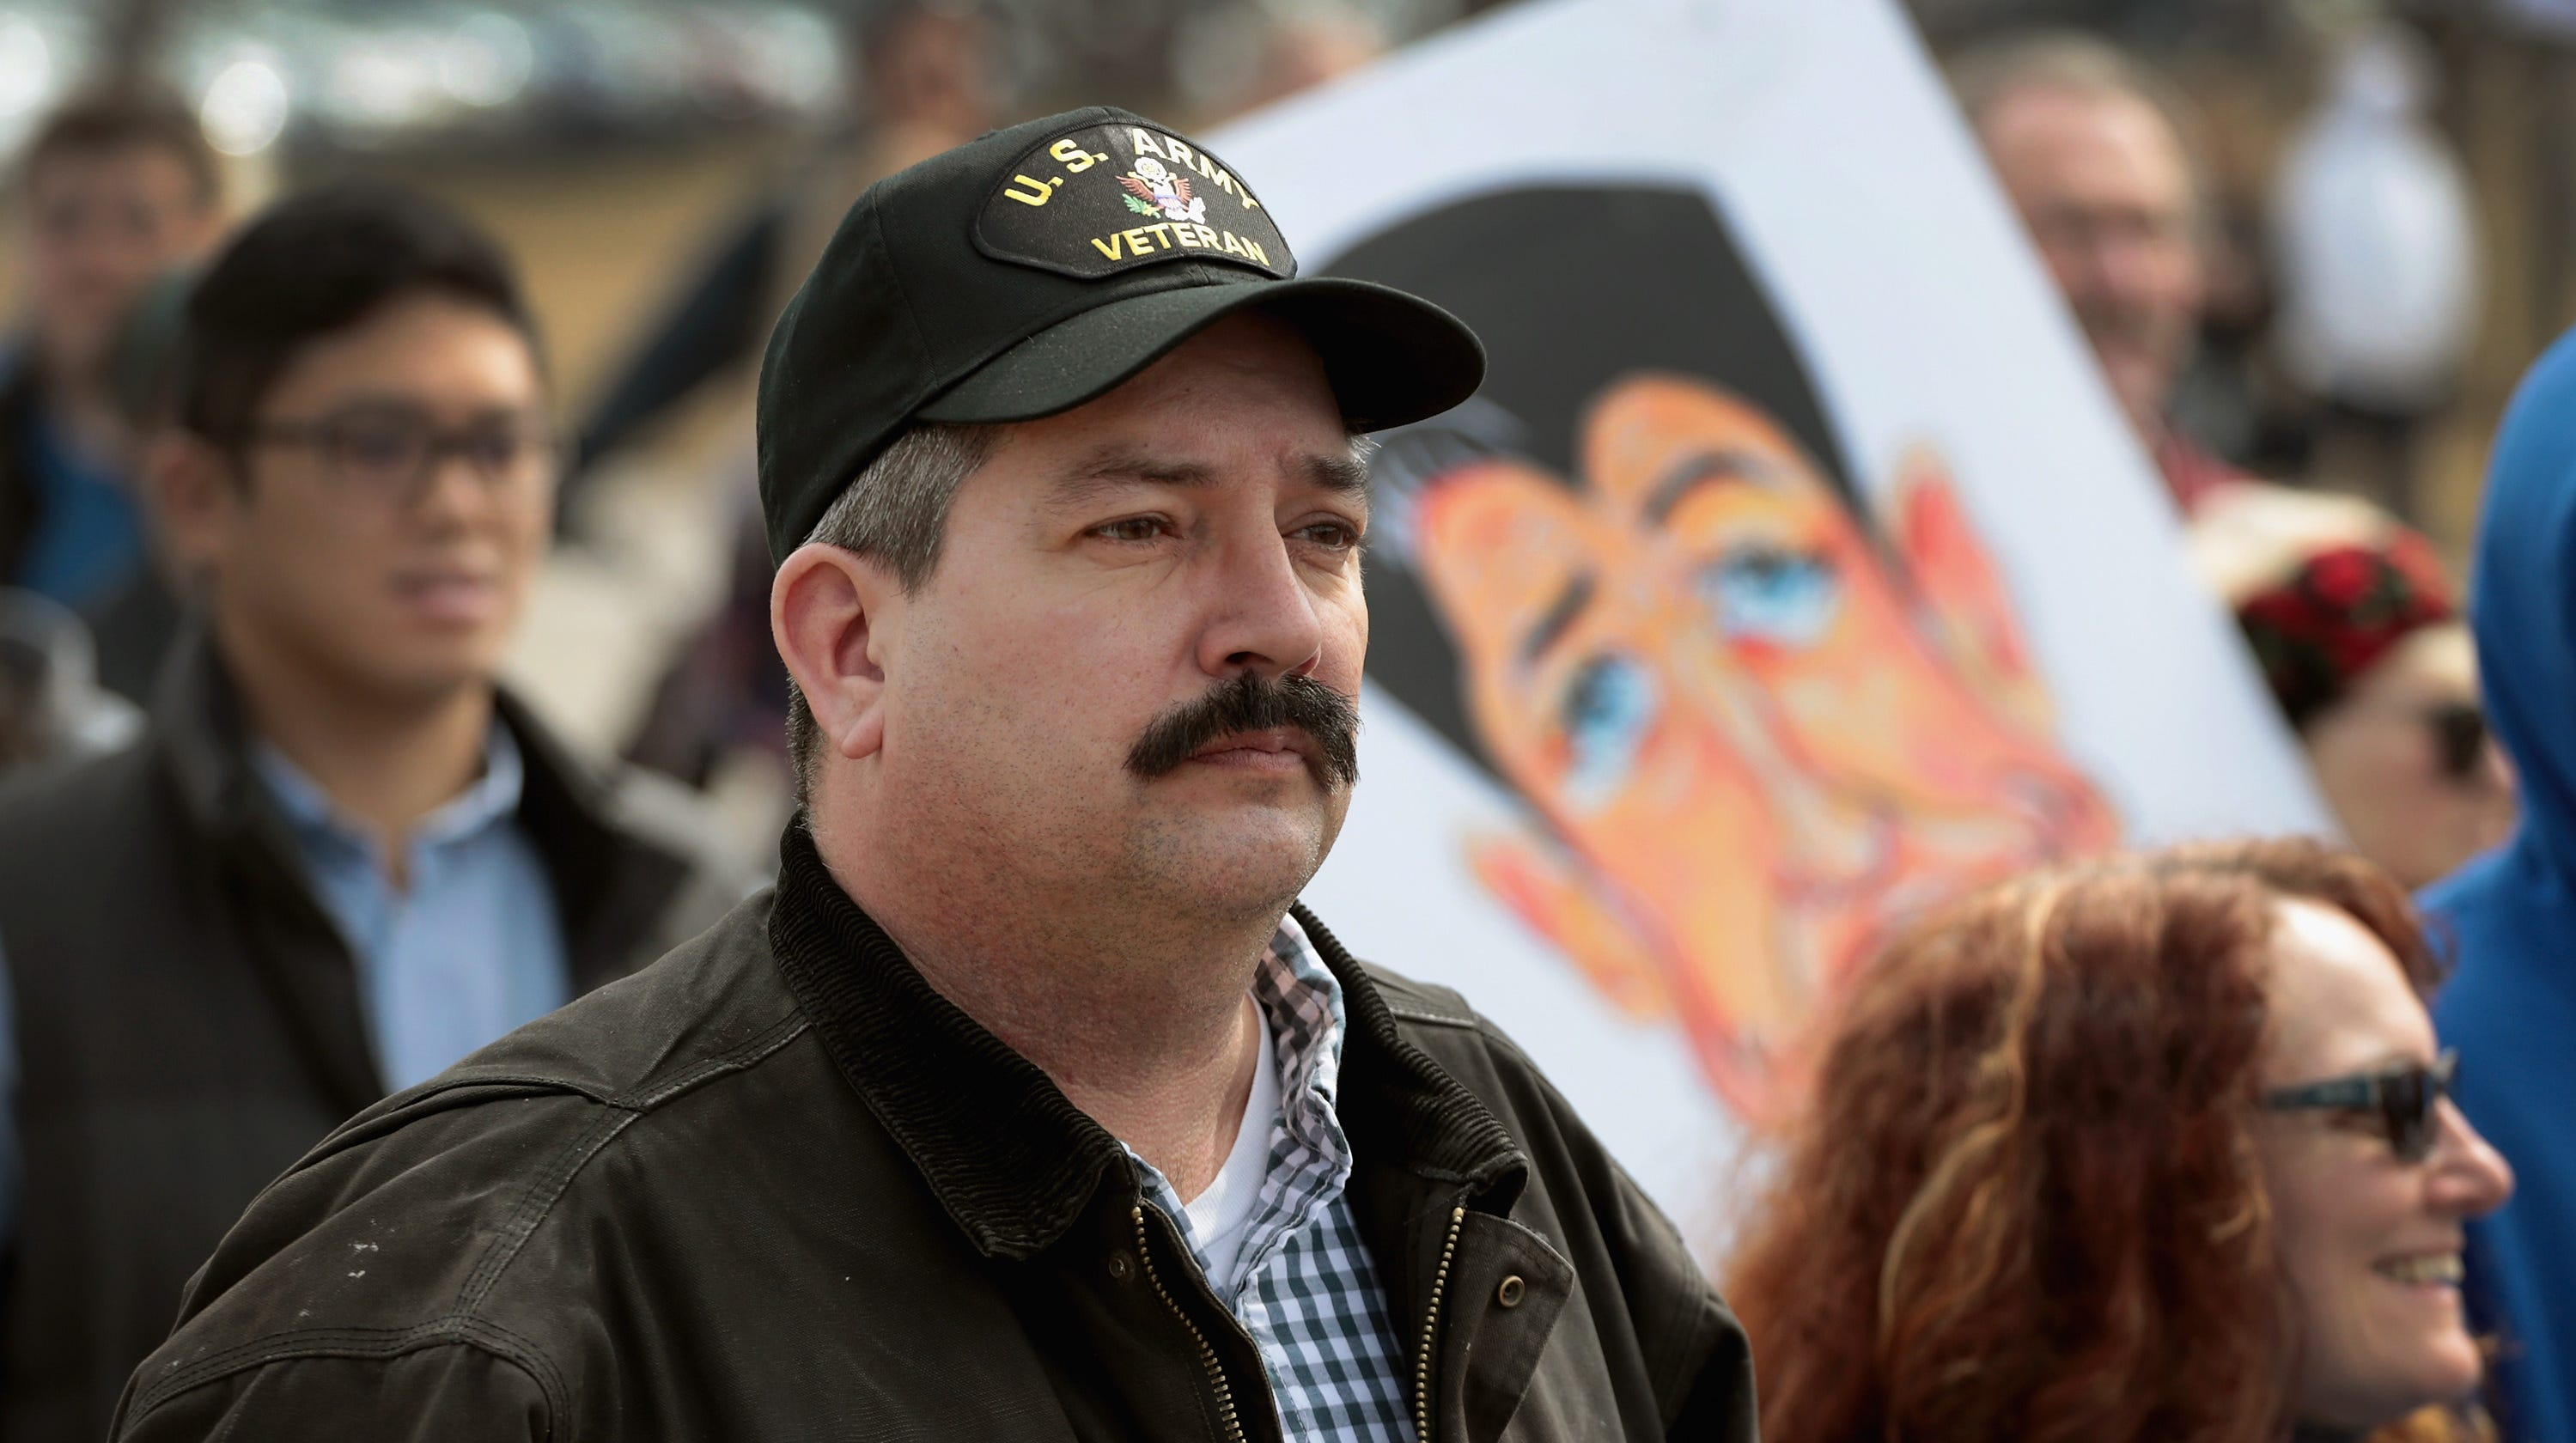 Republican group launches TV ad attacking Randy Bryce over his nine arrests